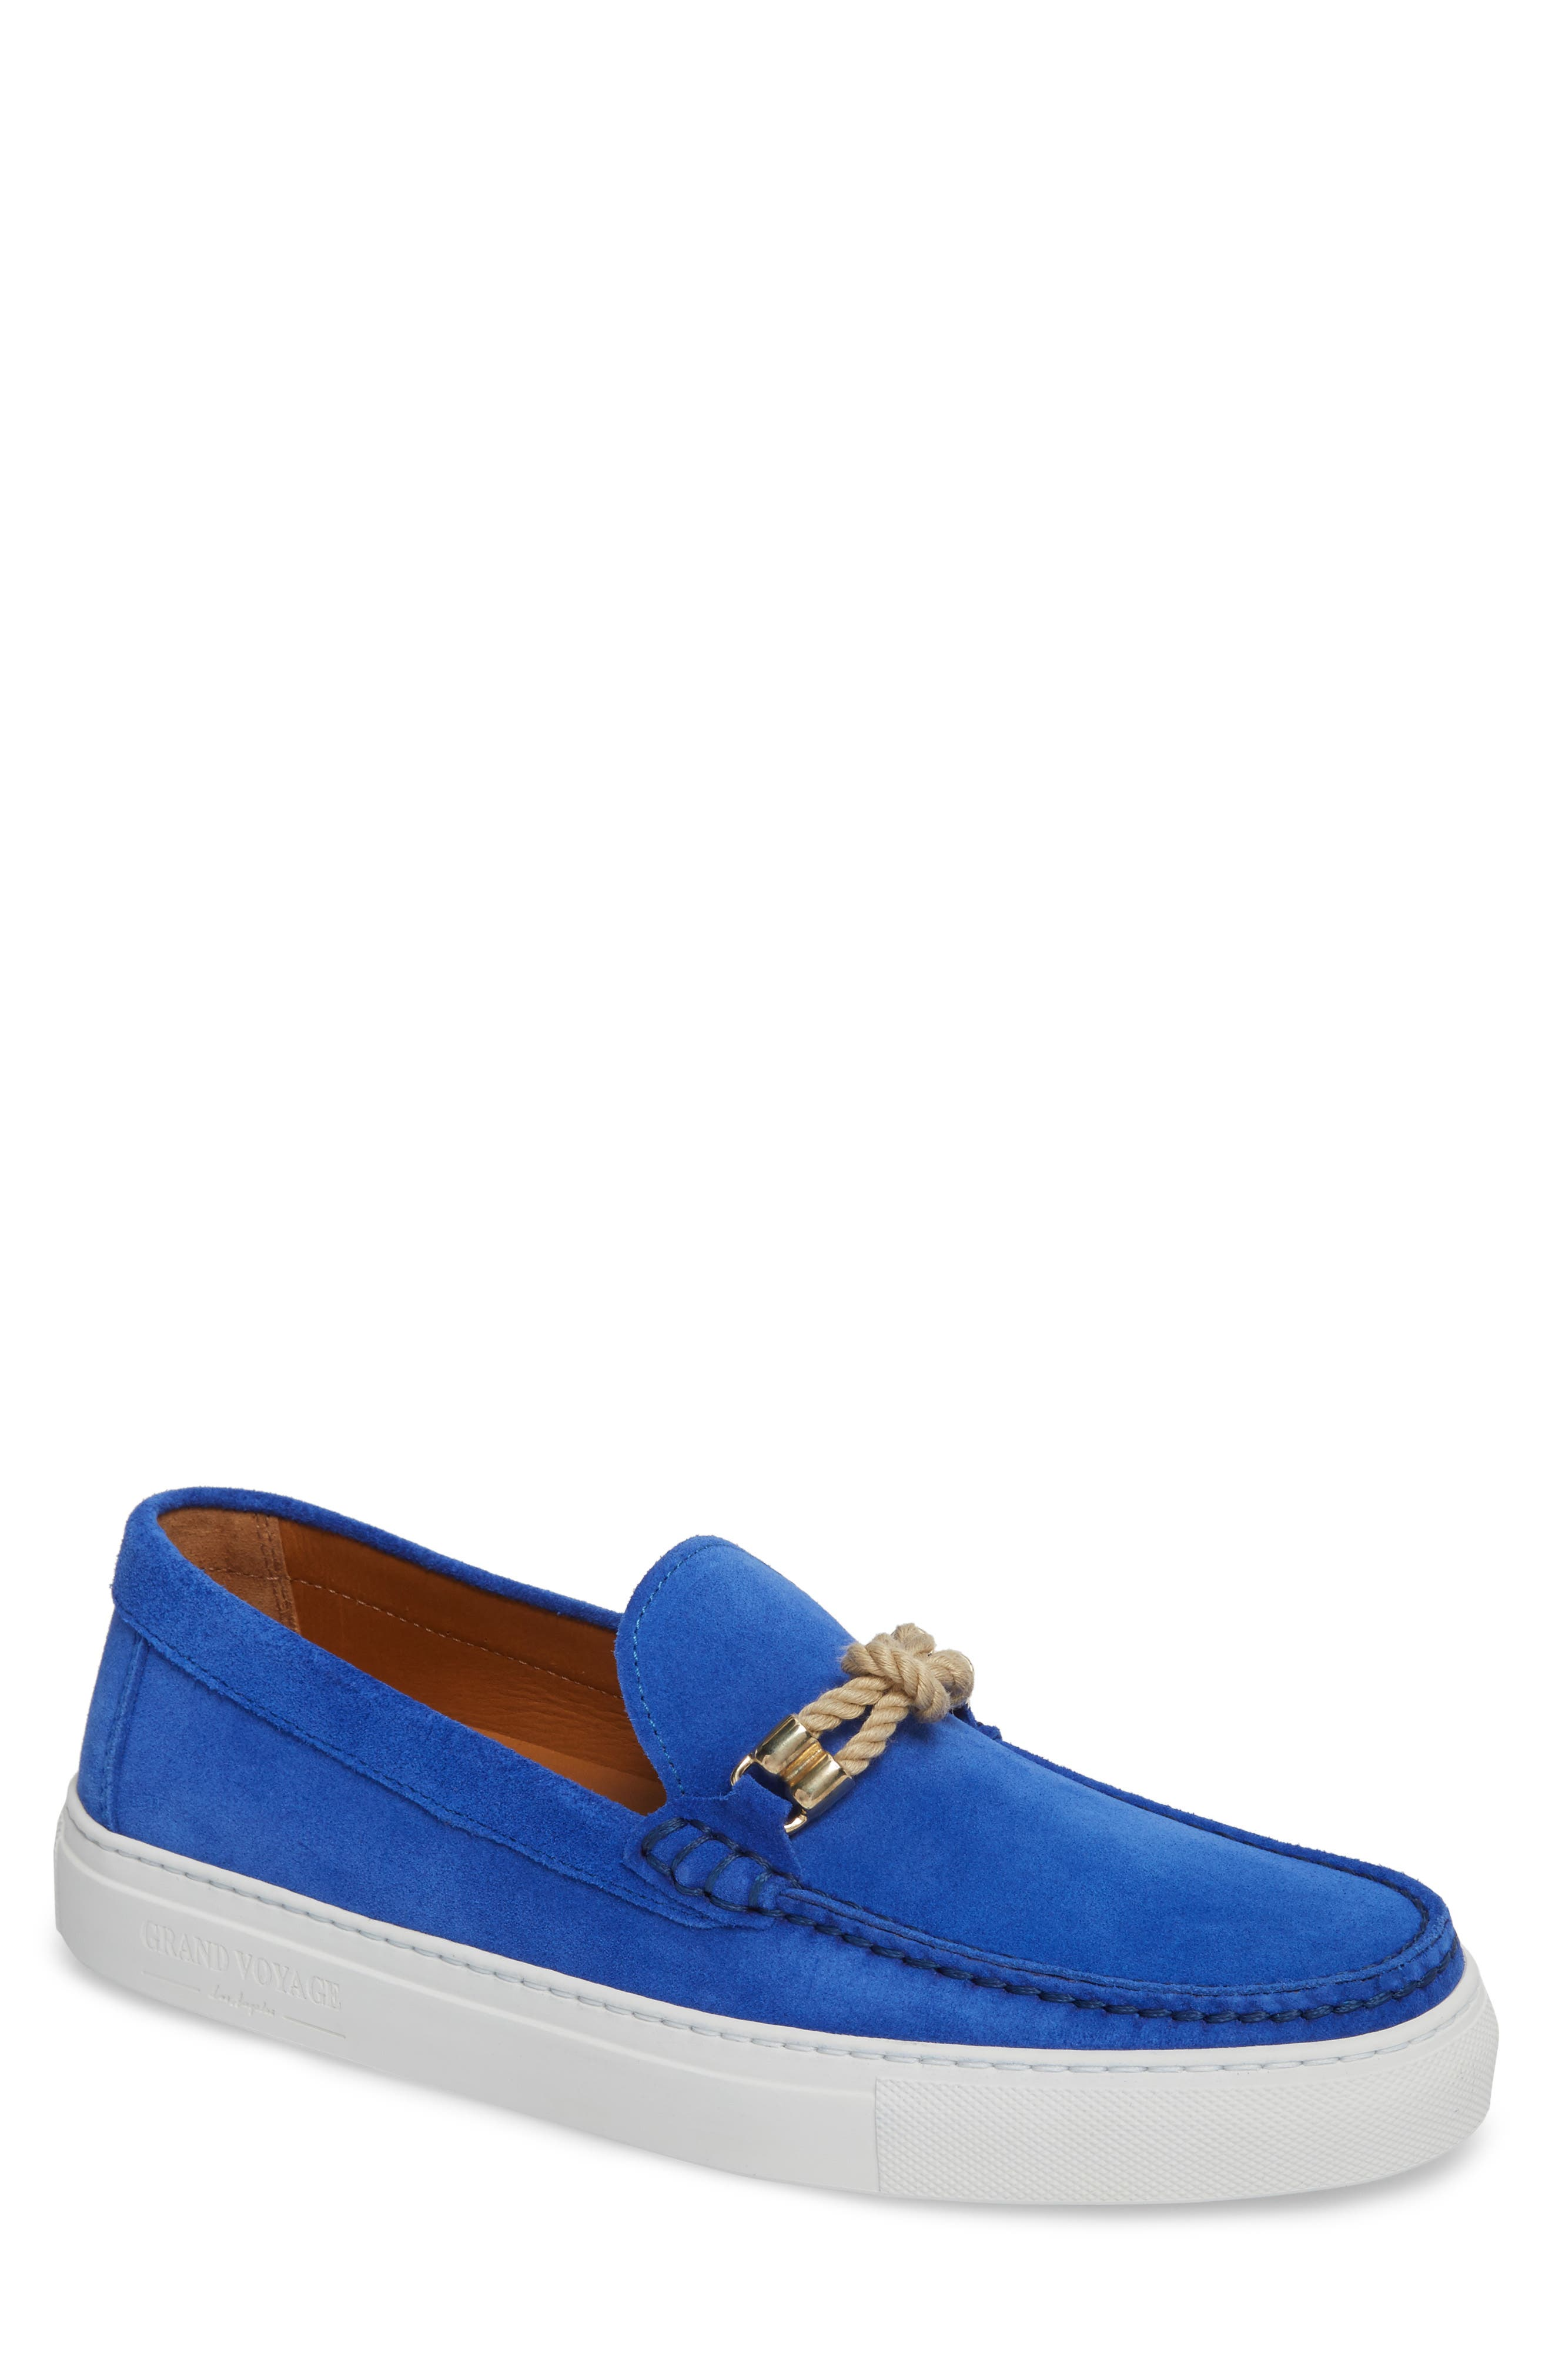 GRAND VOYAGE Britton Square Knot Loafer in Blue Suede